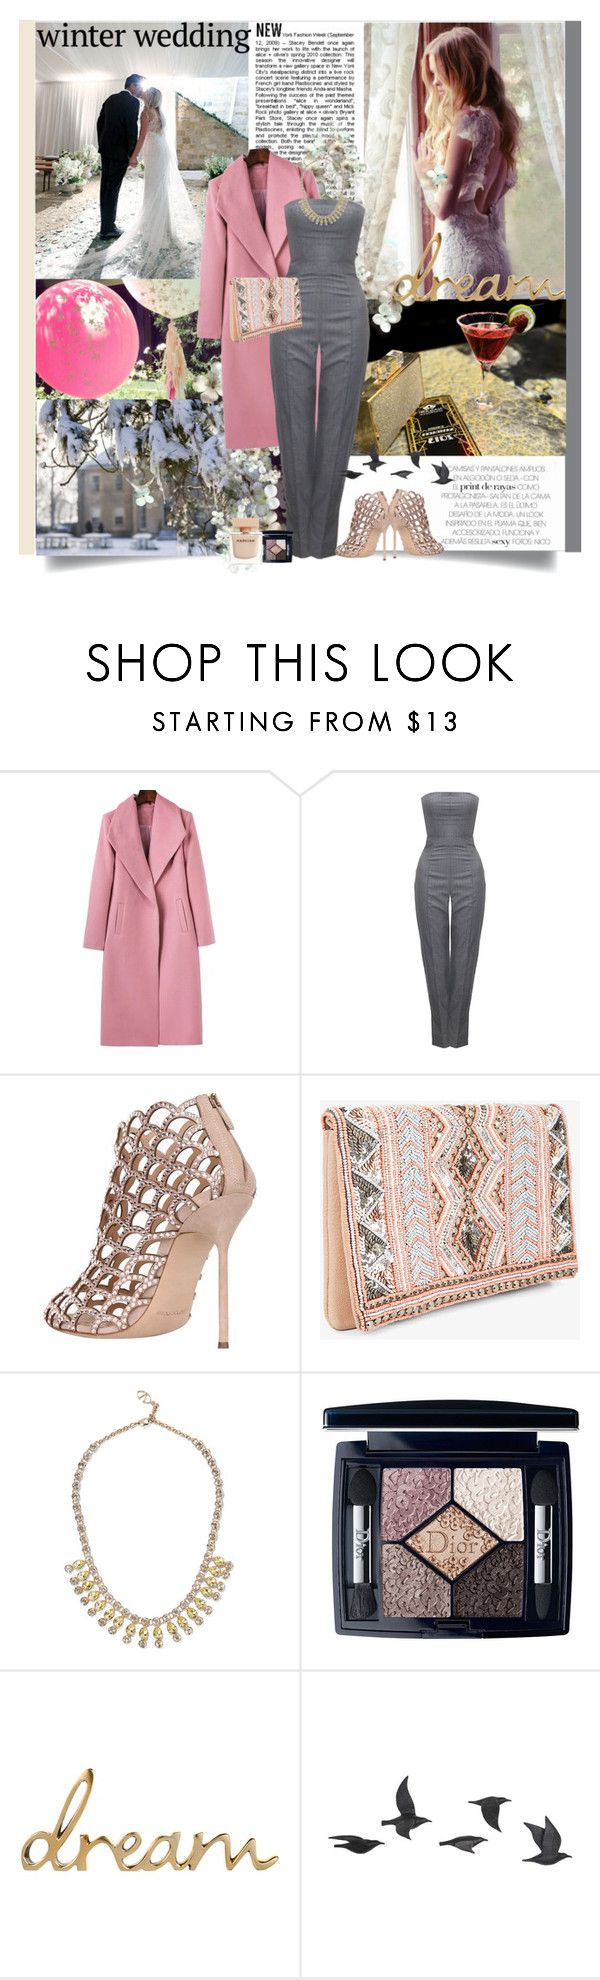 """""""Winter wedding"""" by prudence-sarah ❤ liked on Polyvore featuring Lauren Conrad, Alexander McQueen, Sergio Rossi, Pijama, BCBGeneration, Valentino, Christian Dior, Jayson Home, Narciso Rodriguez and winterwedding"""